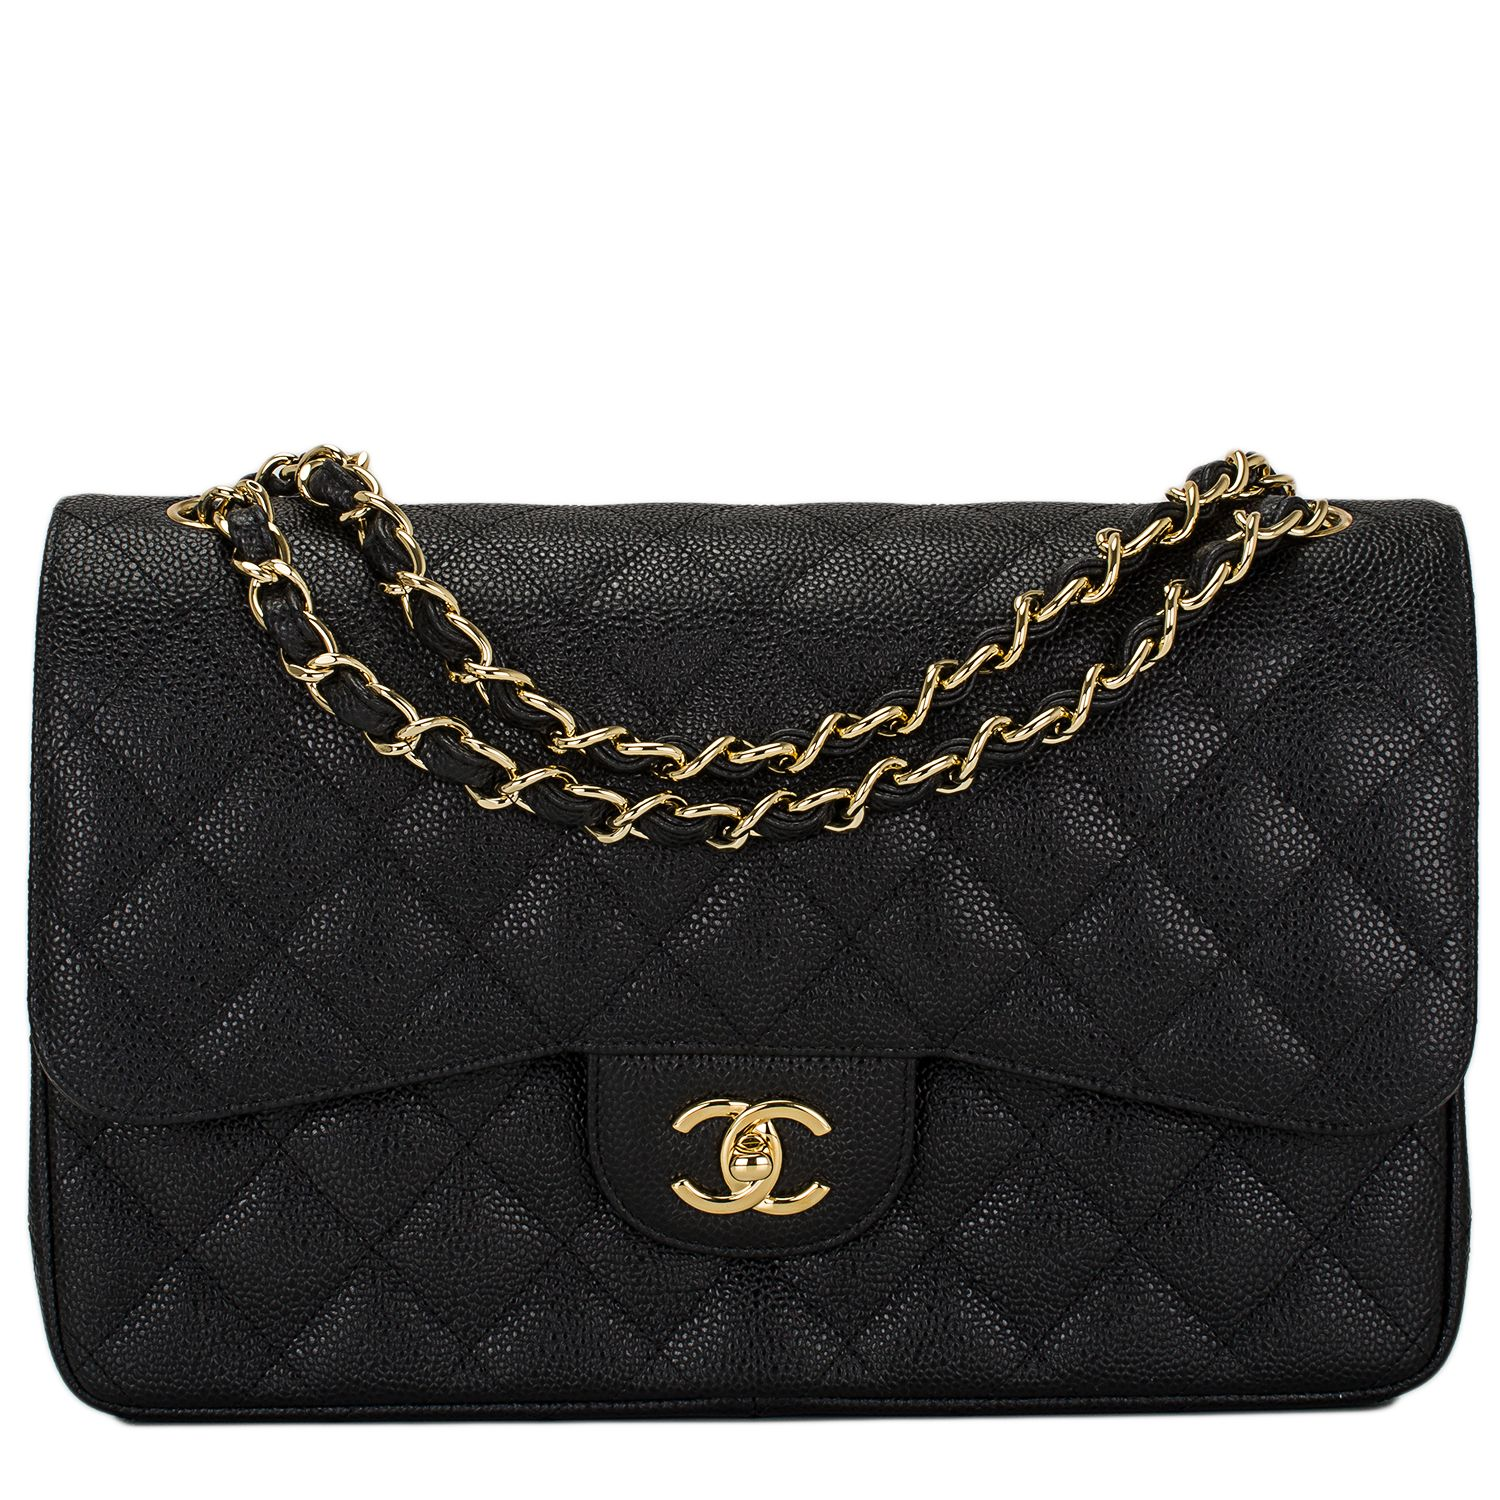 f64f4913c22a Chanel Black Quilted Caviar Jumbo Classic Double Flap Bag Gold Hardware # chanel